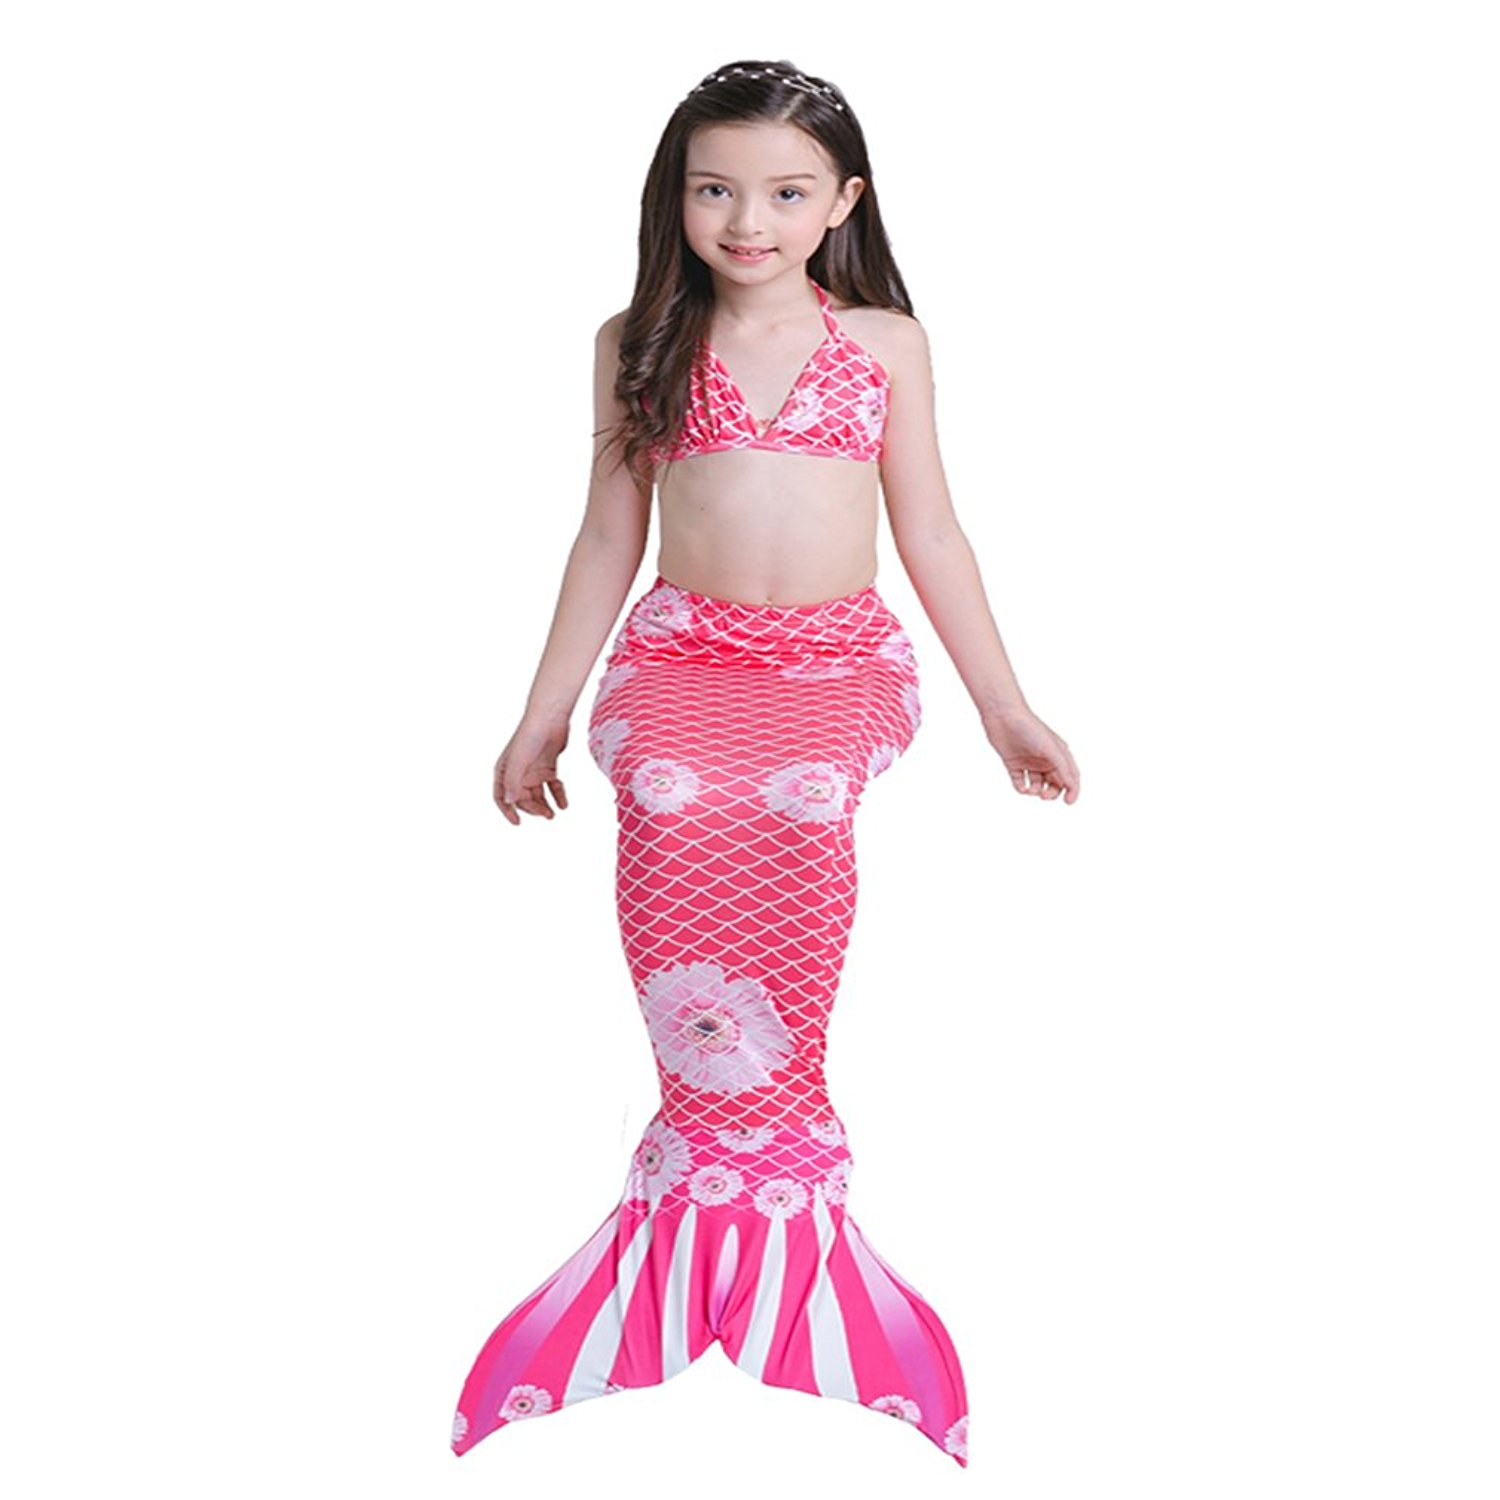 Helpful Girls Mermaid Tails Swimsuit Cosplay Little Swimming Mermaid Tails Kids Children Swimming Wear Flipper Wavy Tops Shorts Dress Sales Of Quality Assurance Bodysuits & One-pieces